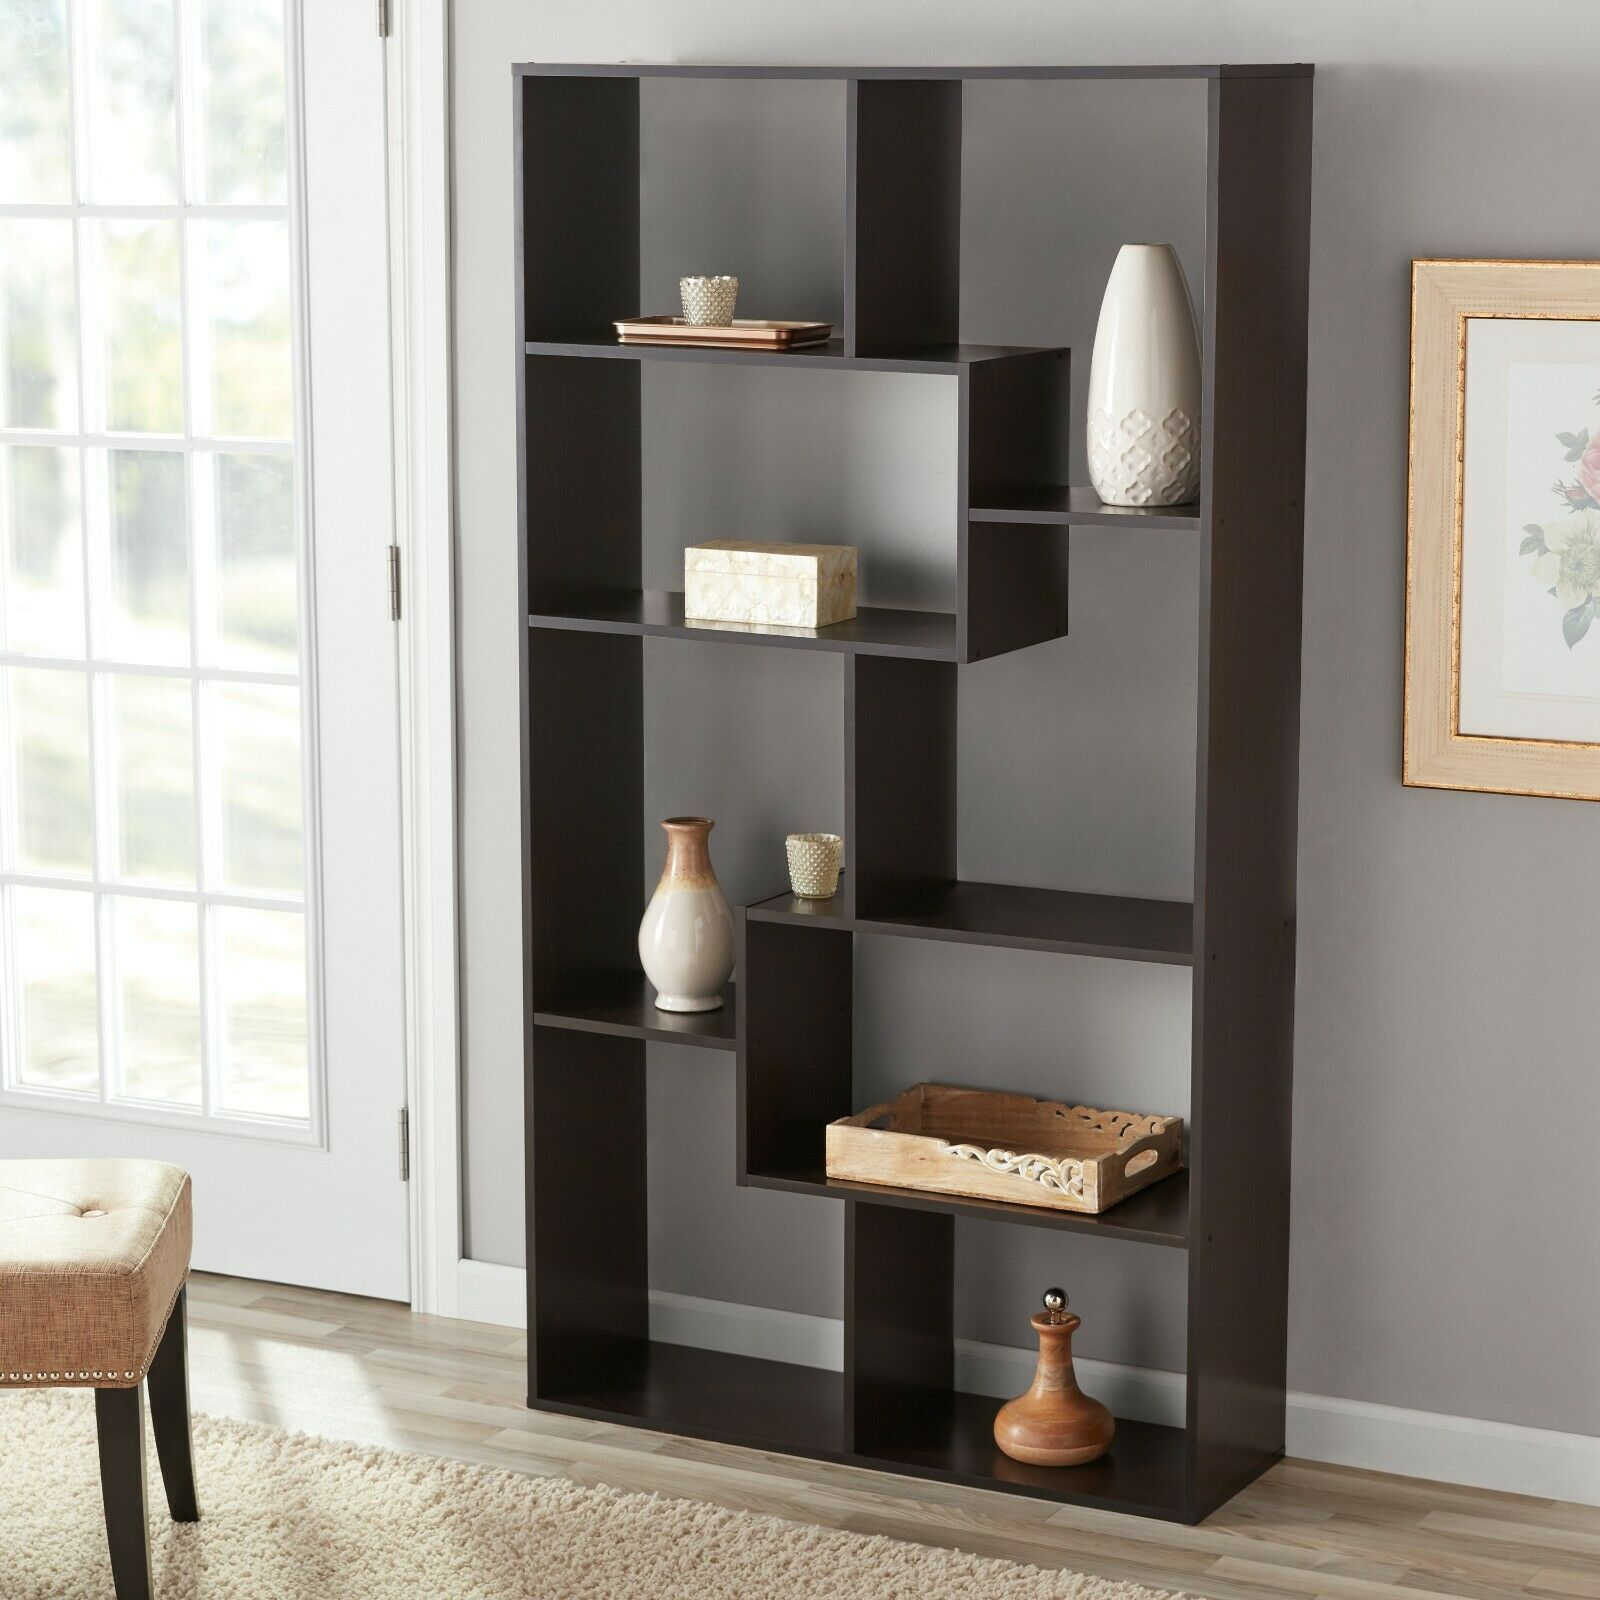 Details About Tall Bookcase Cubby Large Open Bookshelf Modern Cube 8 Shelf Display Brown New In 2020 With Images Cube Bookcase White Bookcase Shelves